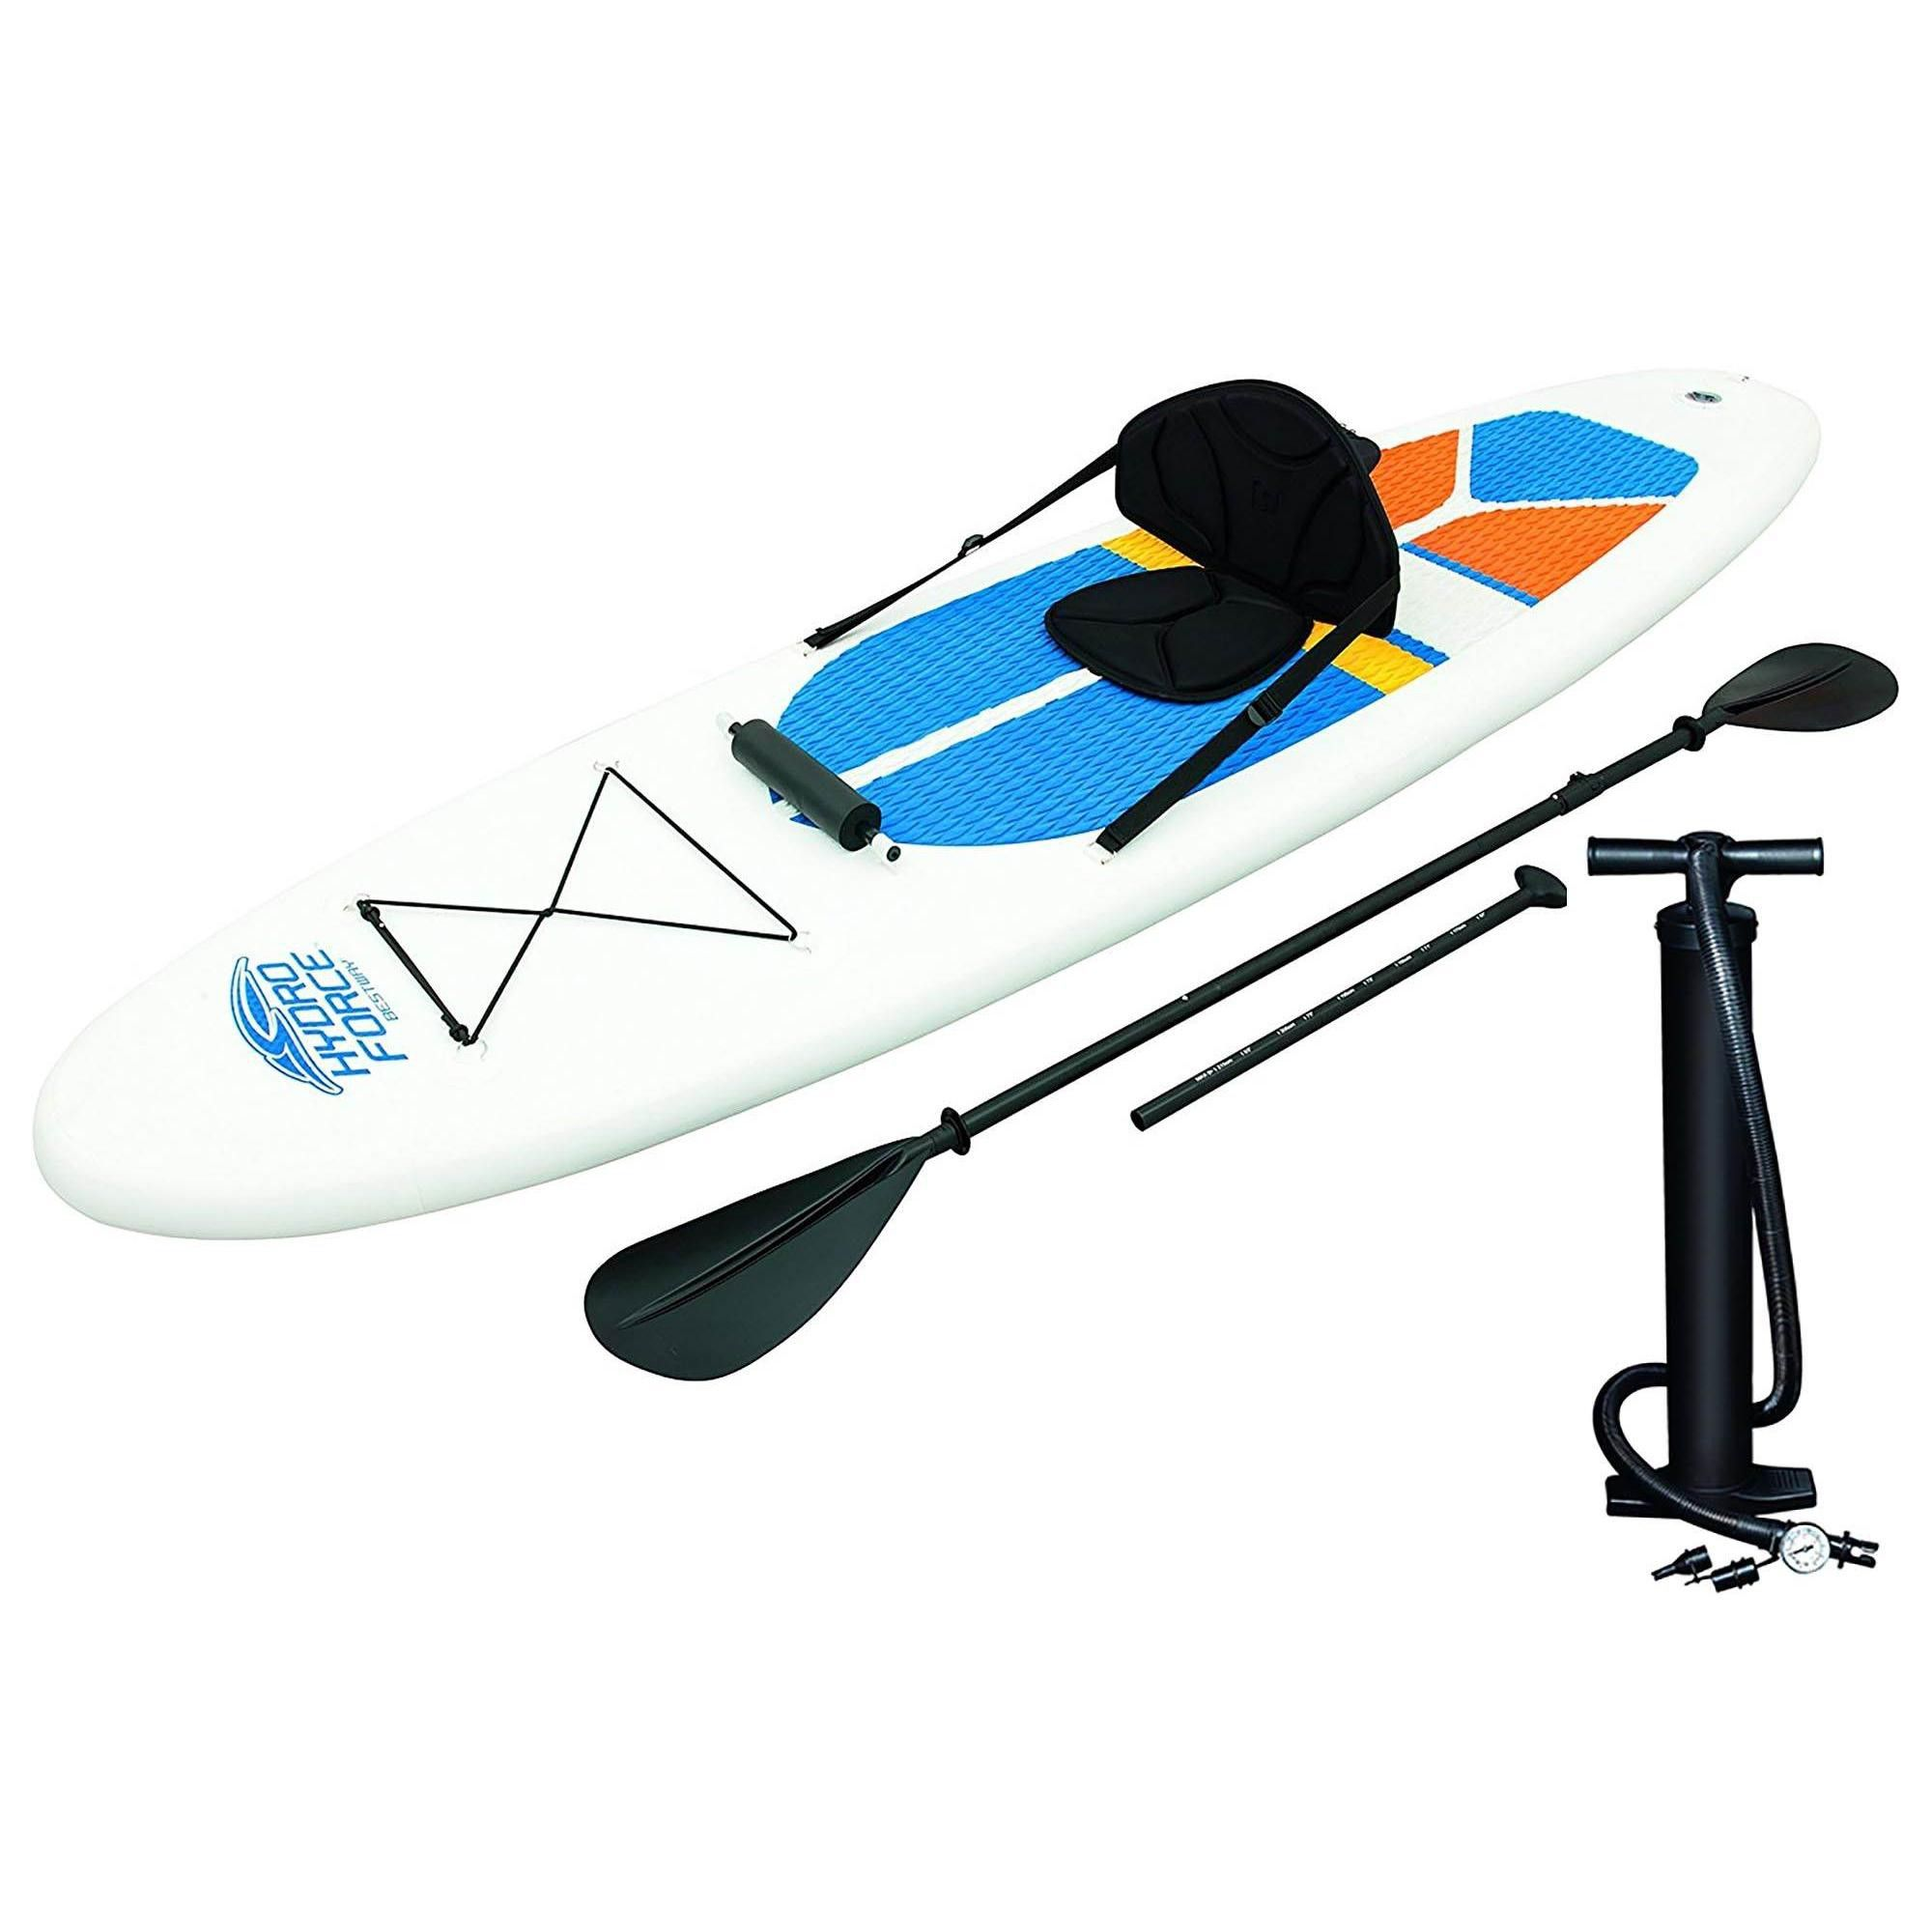 Bestway Hydro Force 10 Foot Inflatable Stand Up Paddle Board Sup Kayak White In 2020 With Images Standup Paddle Inflatable Kayak Kayaking